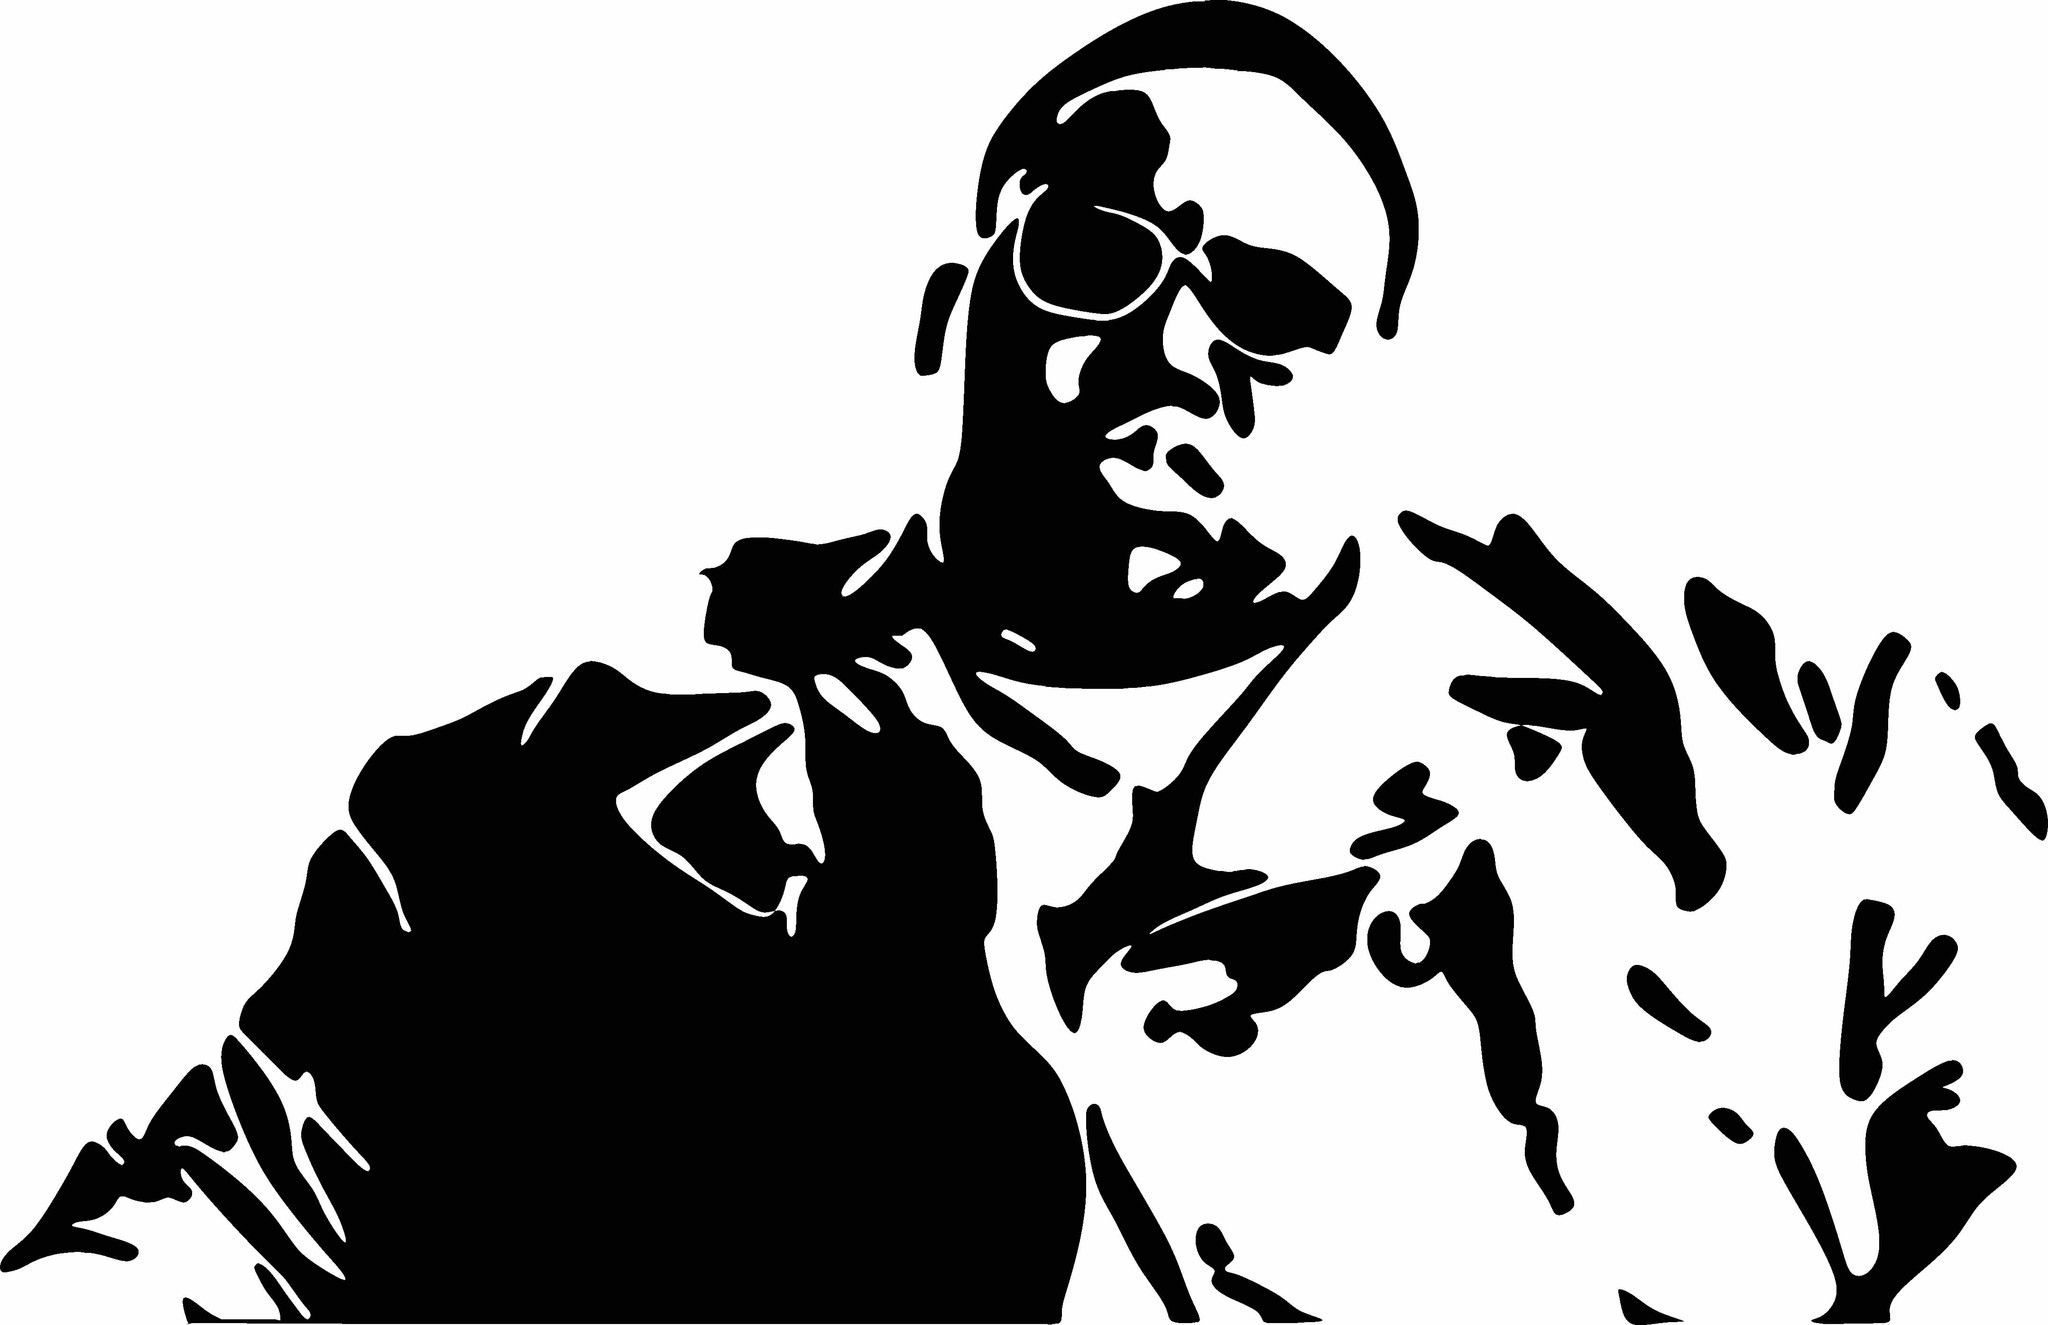 Big papa vinyl decal graphic choose your color and size busta rhymes biggie smalls